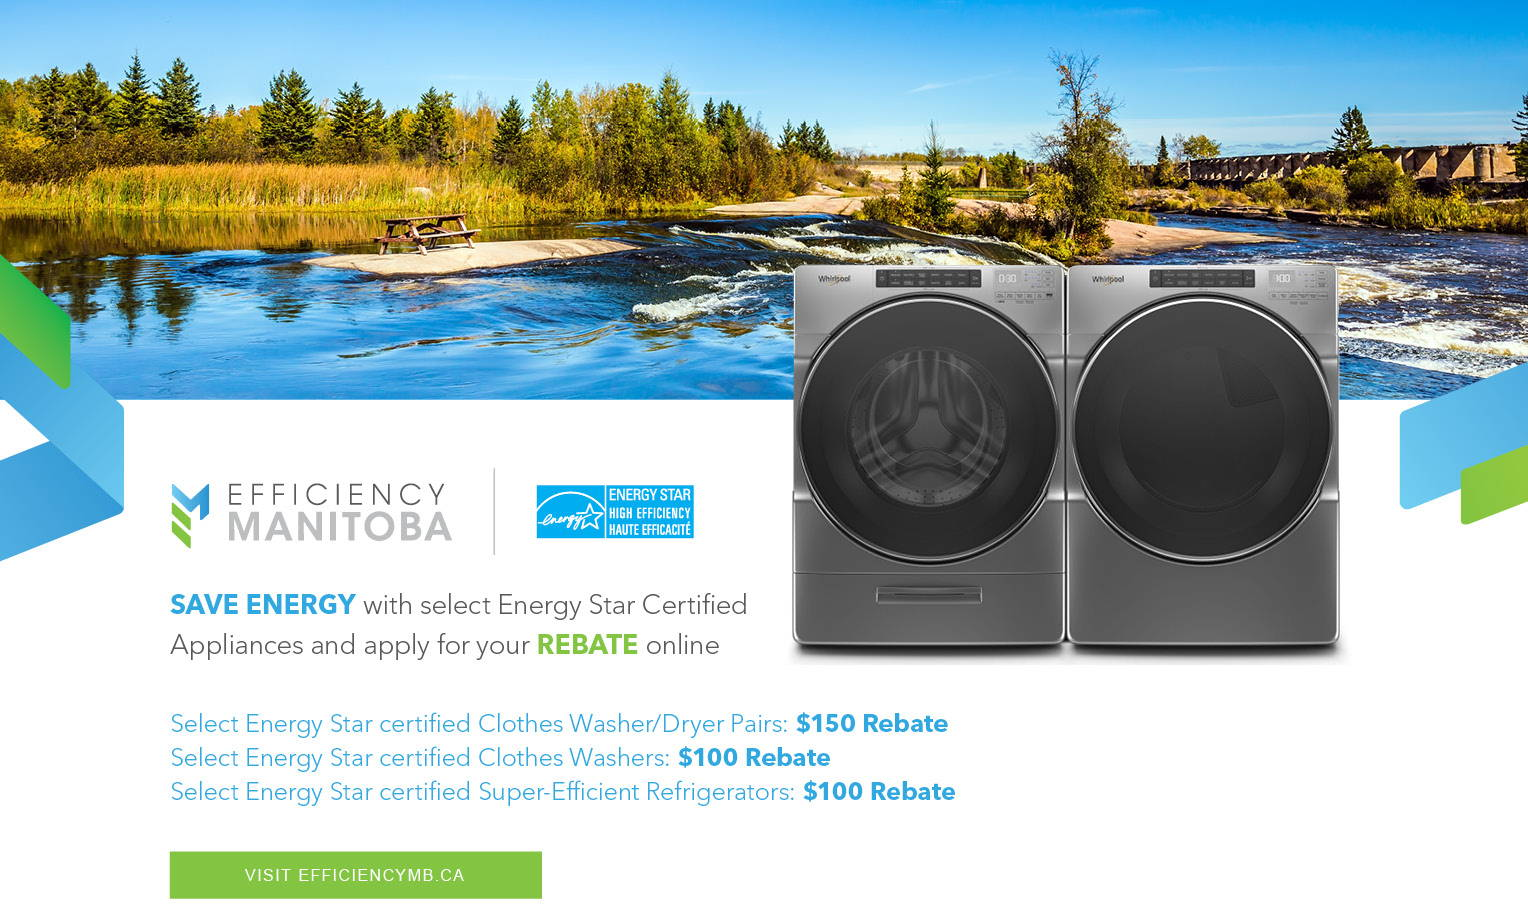 Image of banner by efficiency manitoba with text SAVE Energy with select Energy Star Certified Appliances and apply for your REBATE online with Efficiency Manitoba when you buy from Dufresne.ca upto  $150 on clothers washer/dryer pairs, $100 on washers and $100 on super efficient refrigerators visit efficiencymb.ca